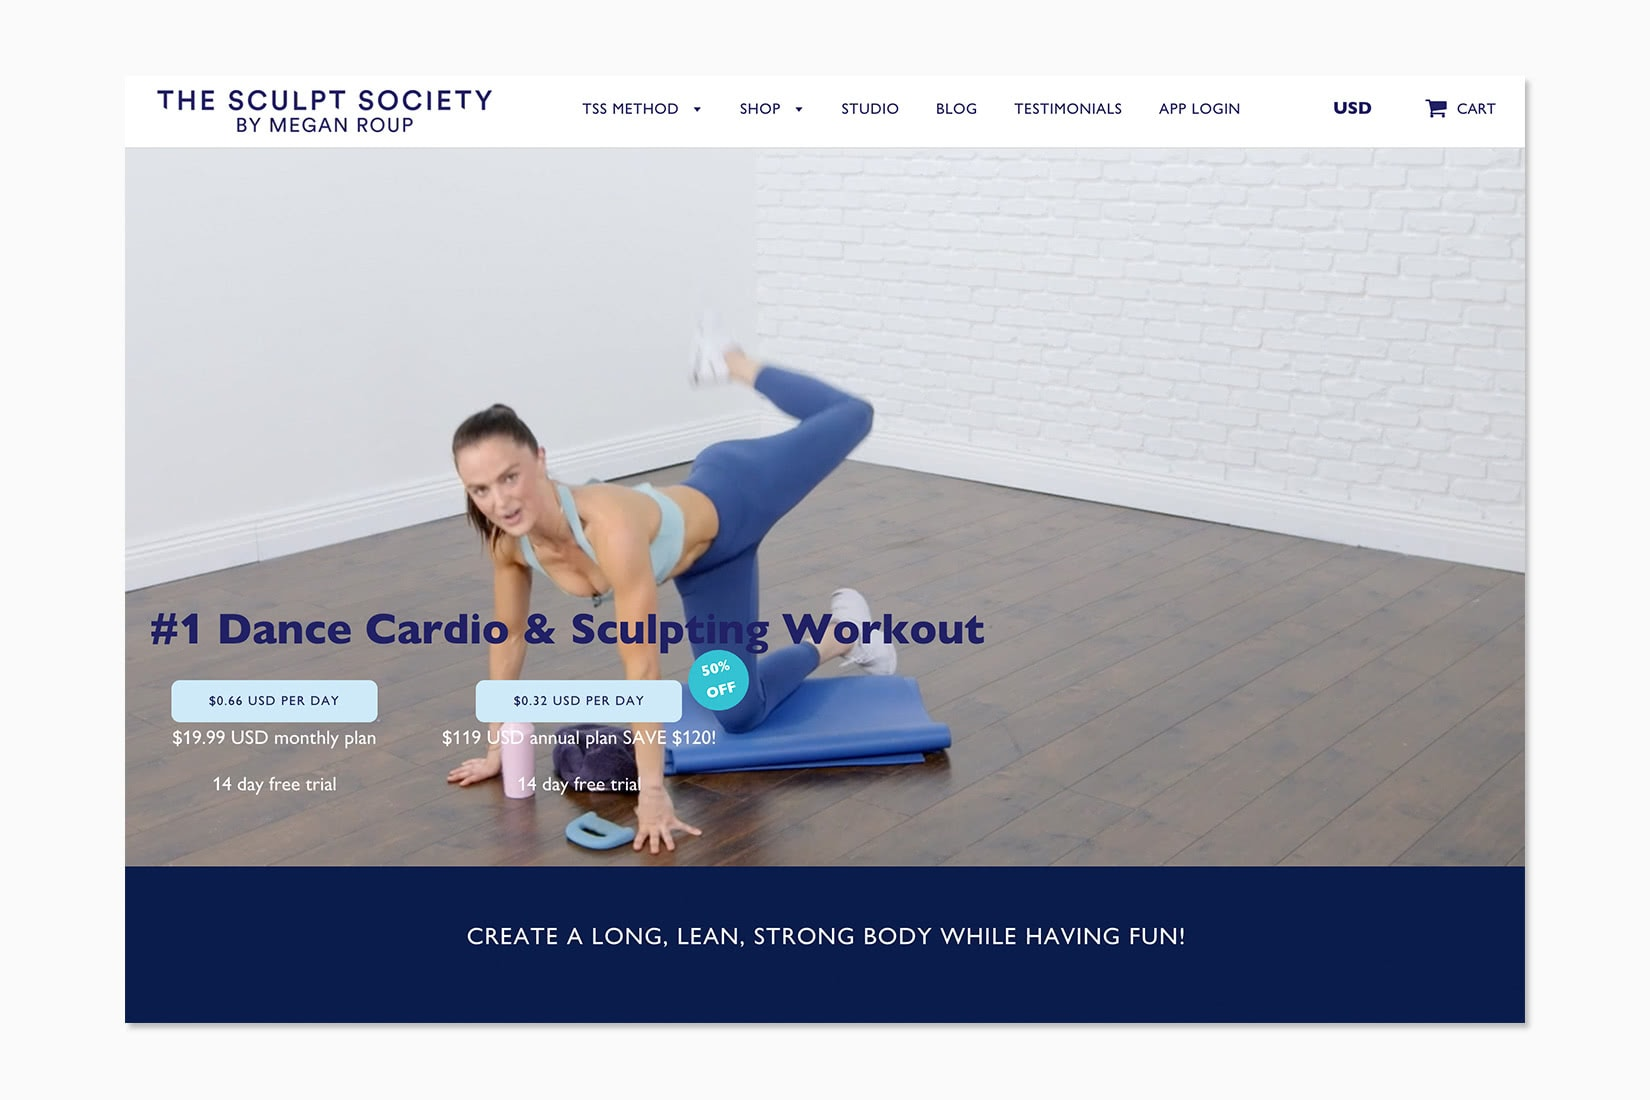 best online workout program thesculptsociety review - Luxe Digital